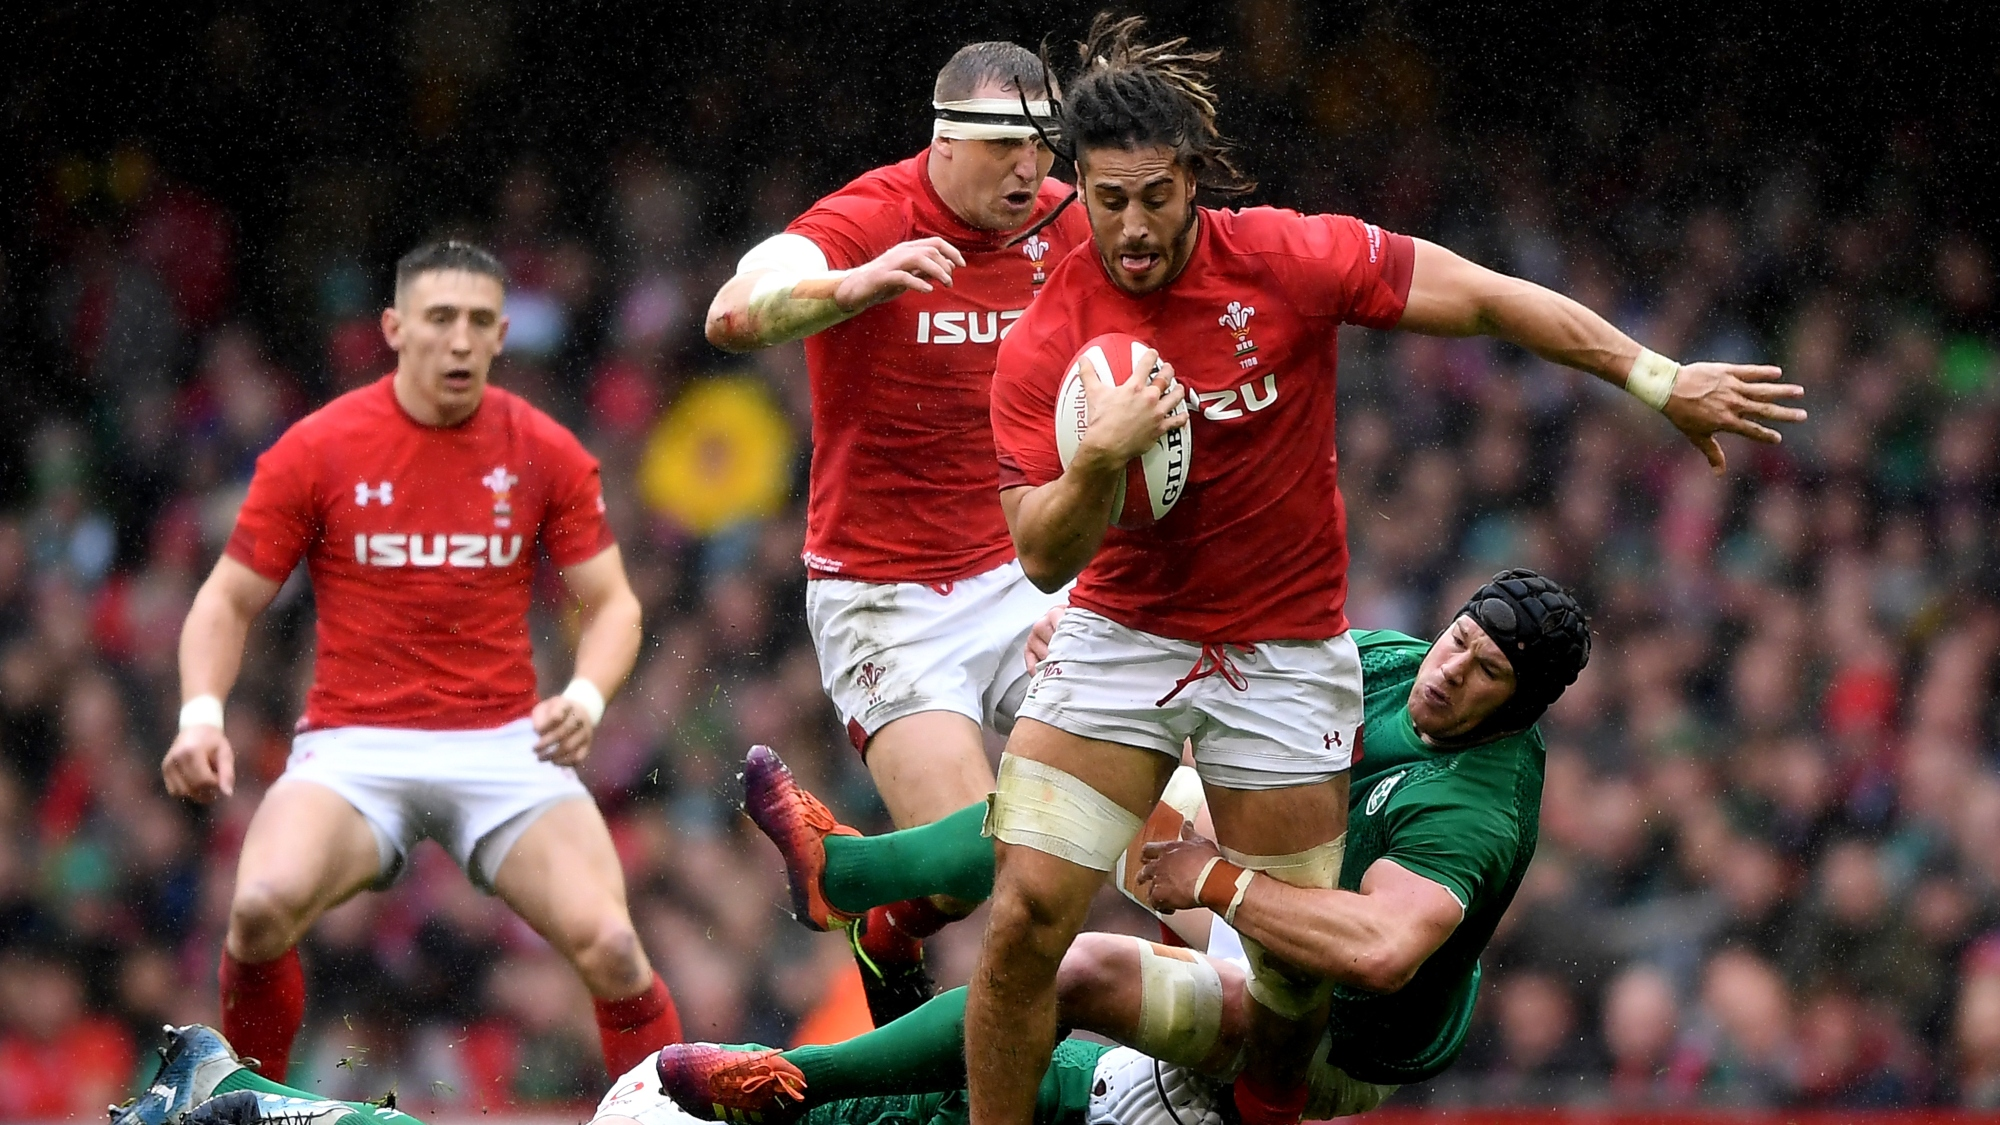 Six Nations Rugby | Josh Navidi's journey to captaining Wales